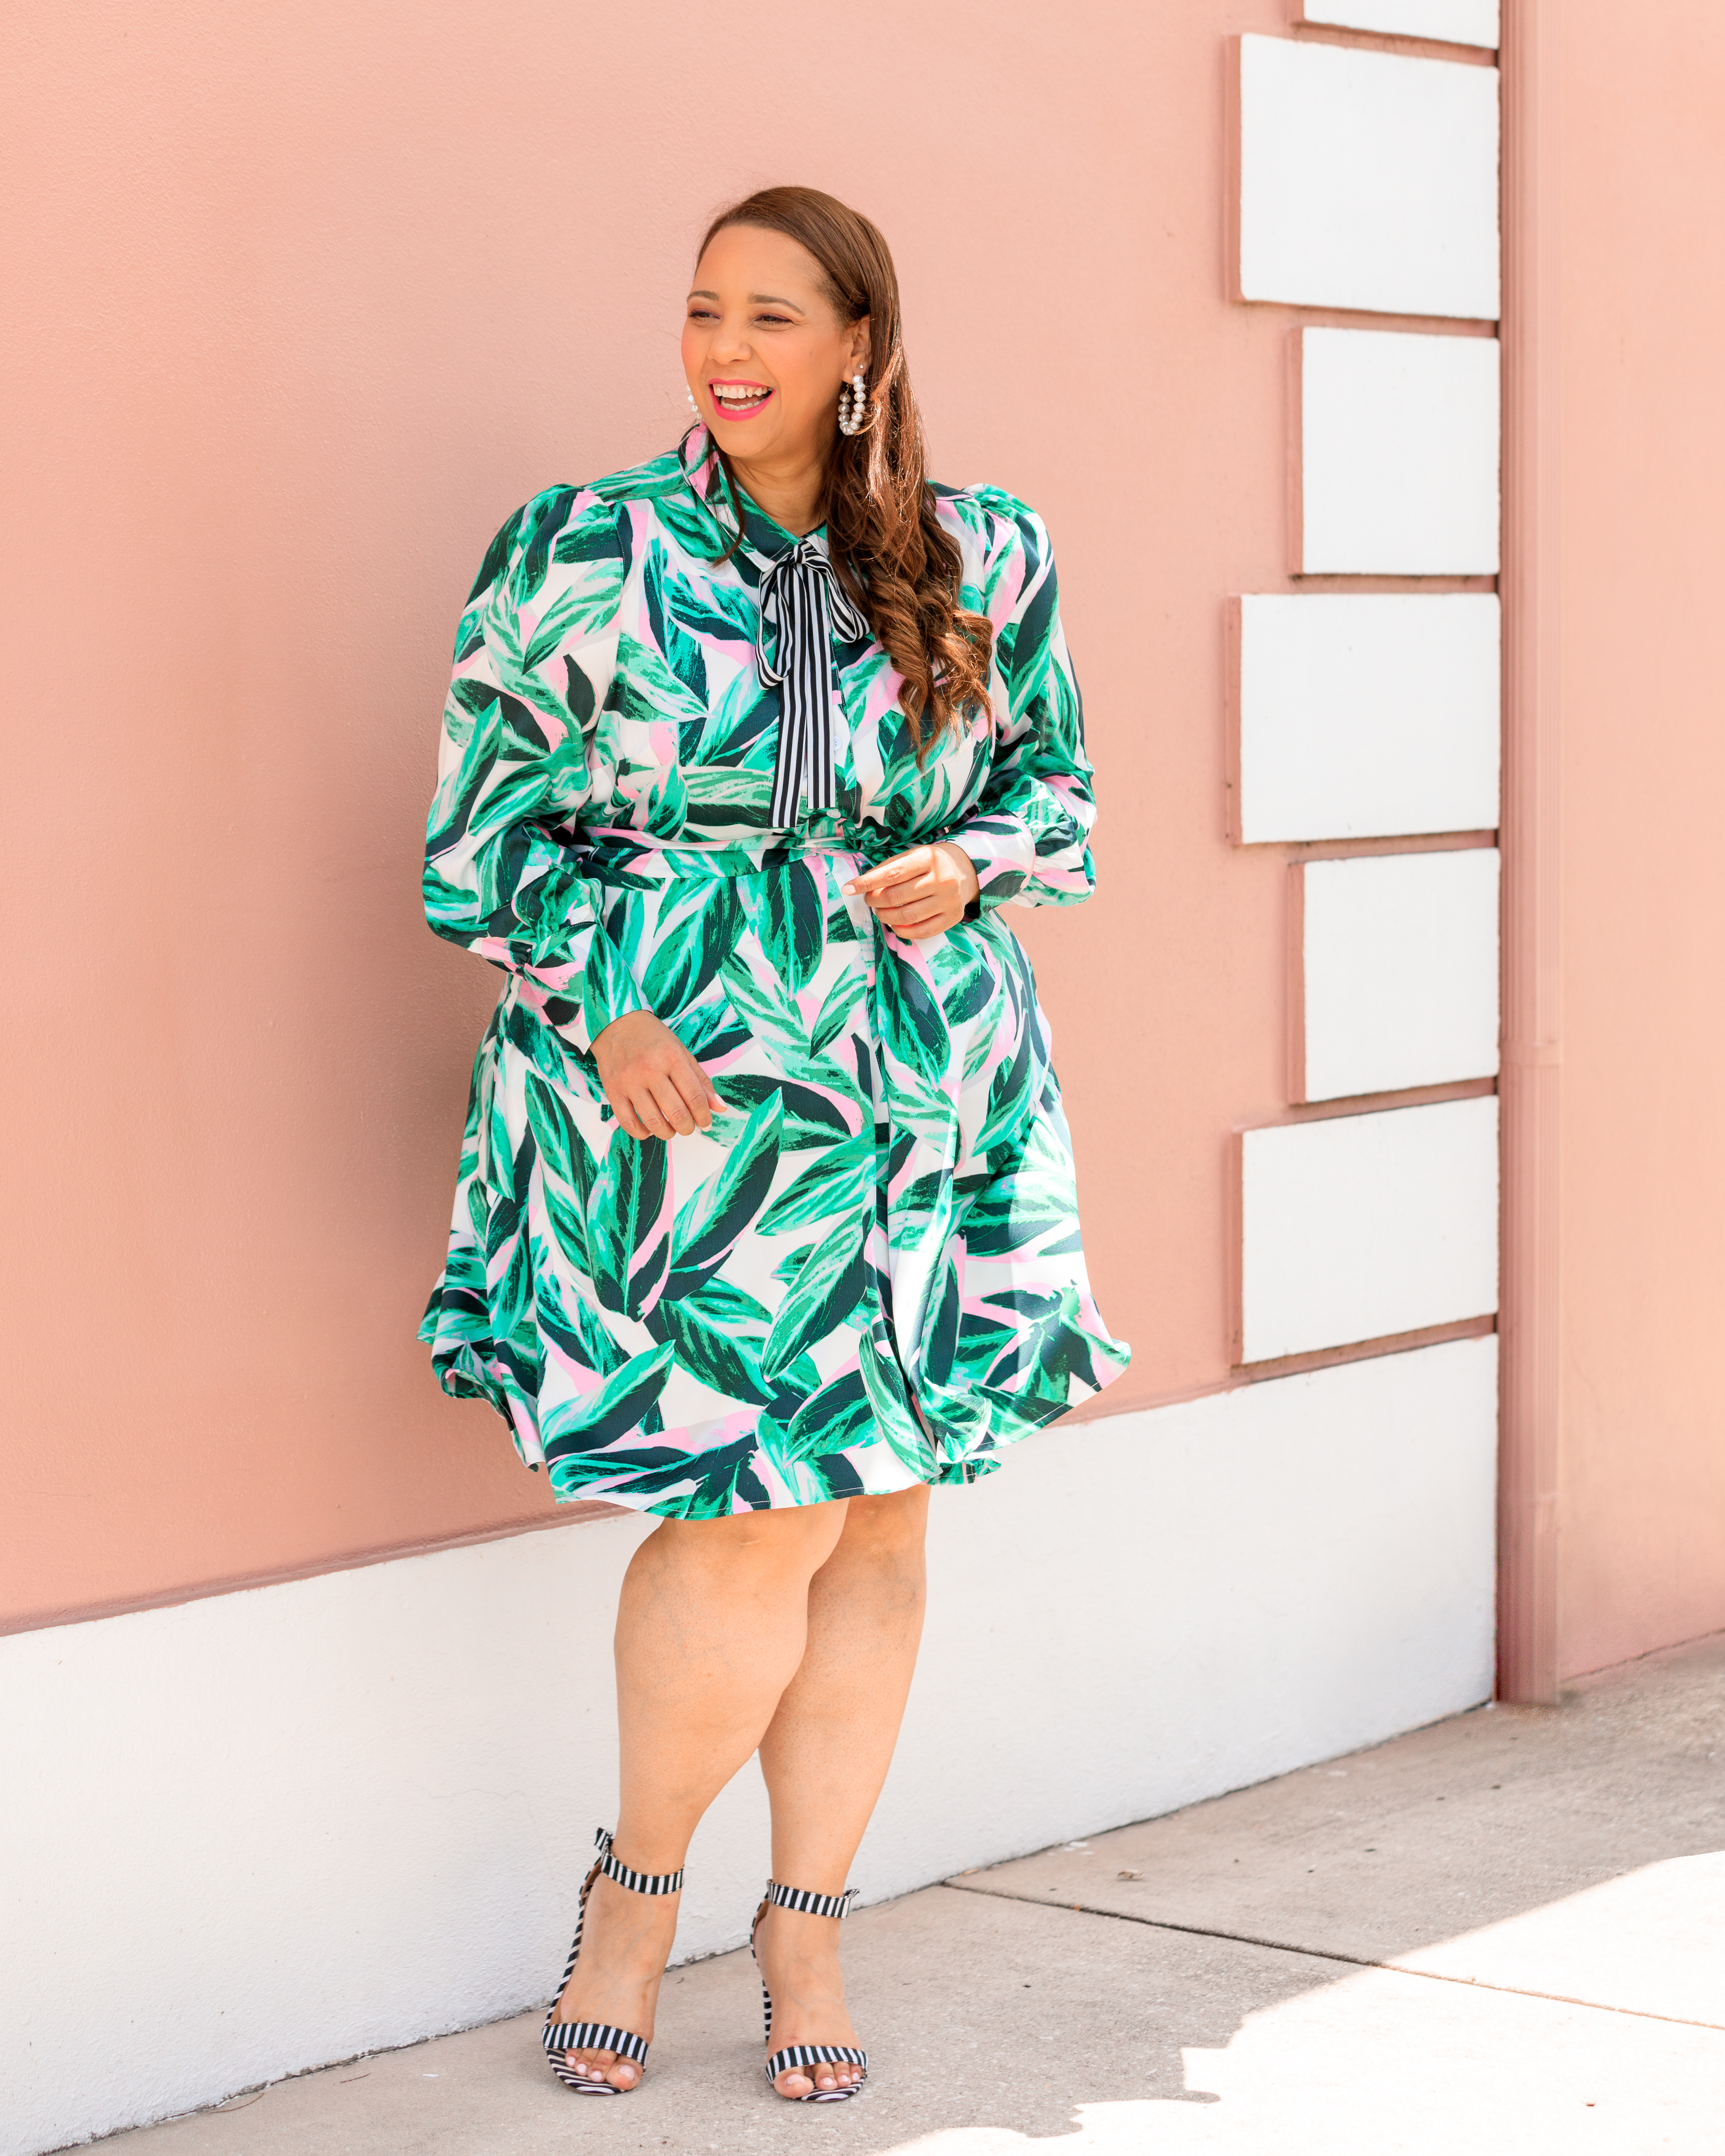 Palm Leaf Print Shirtdress From The Beauticurve x Lane Bryant Collection